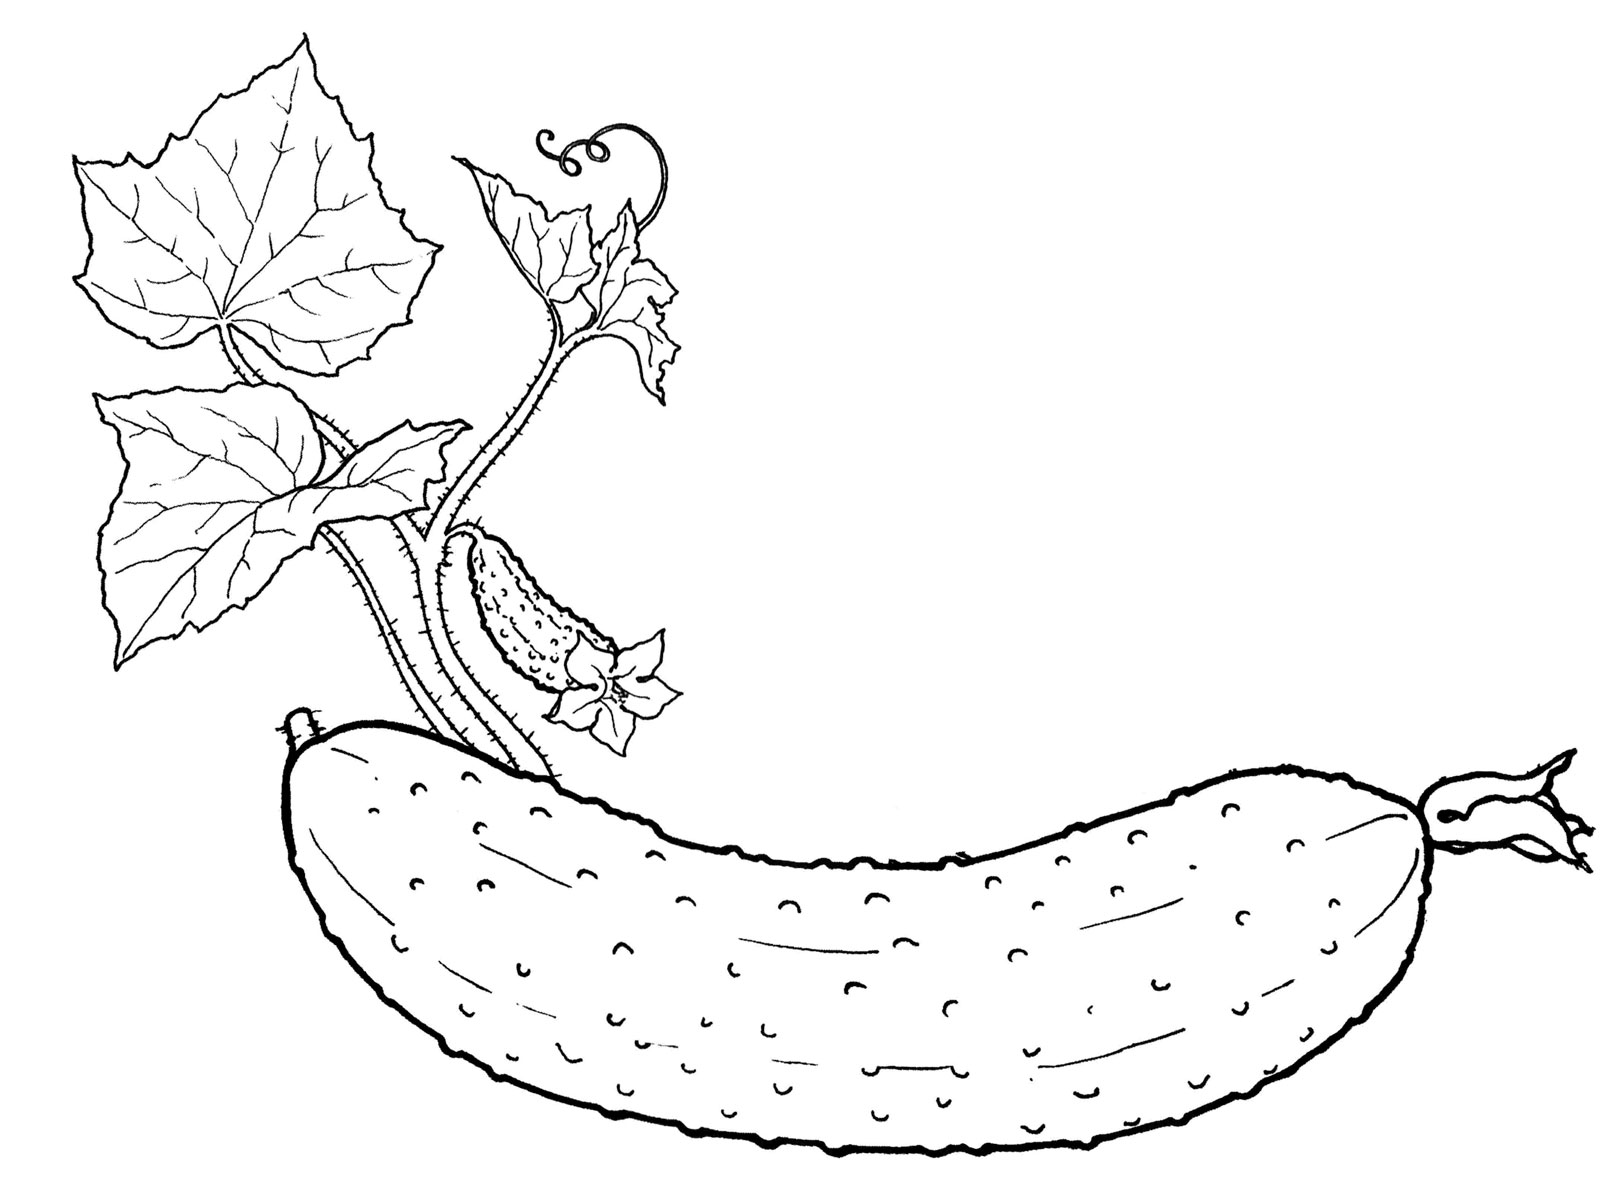 Cucumber coloring pages to download